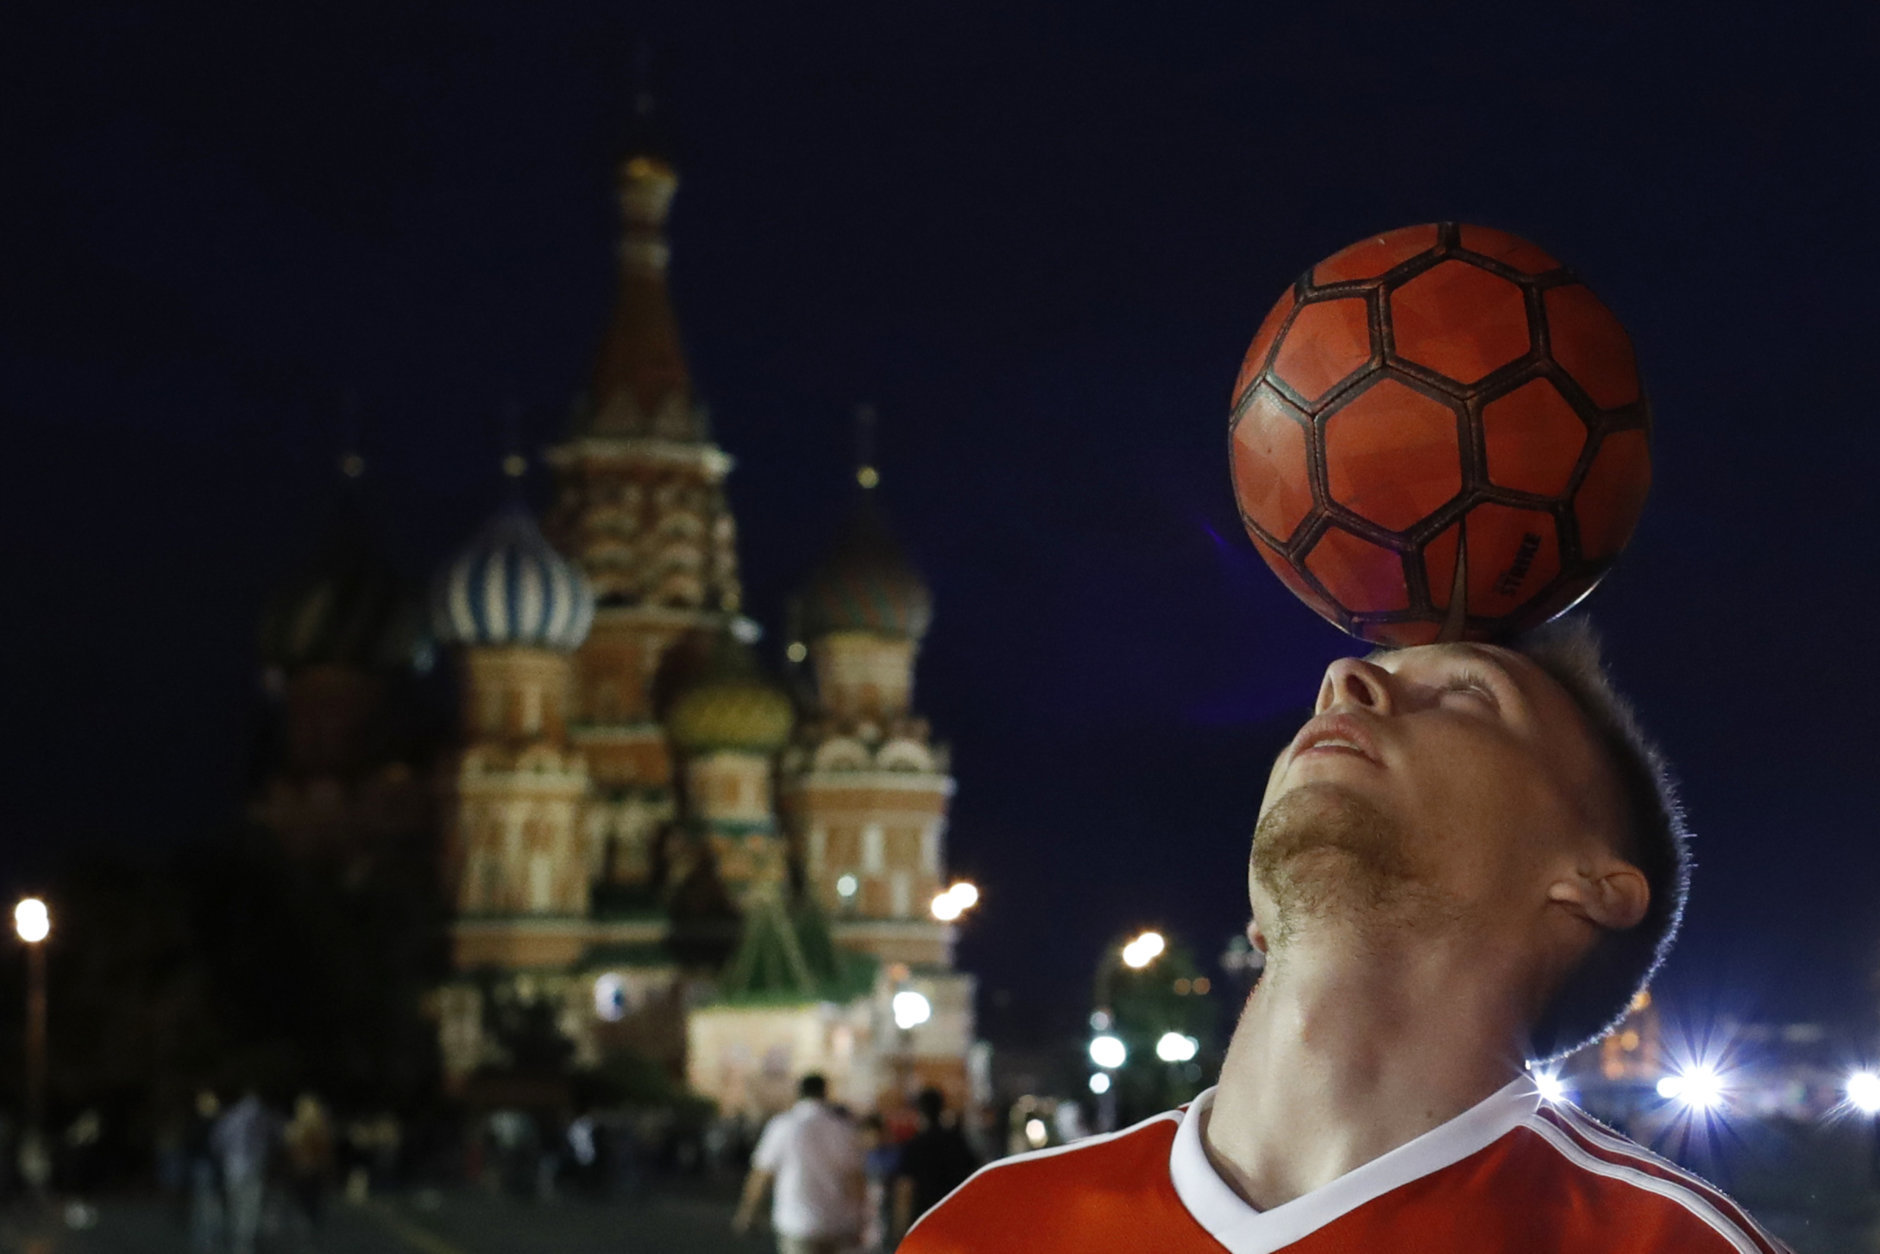 A Russian soccer fan shows off his ball skills as he plays with tourists and soccer fans in Red Square during the 2018 soccer World Cup in Moscow, Russia, Tuesday, July 3, 2018. (AP Photo/Hassan Ammar)